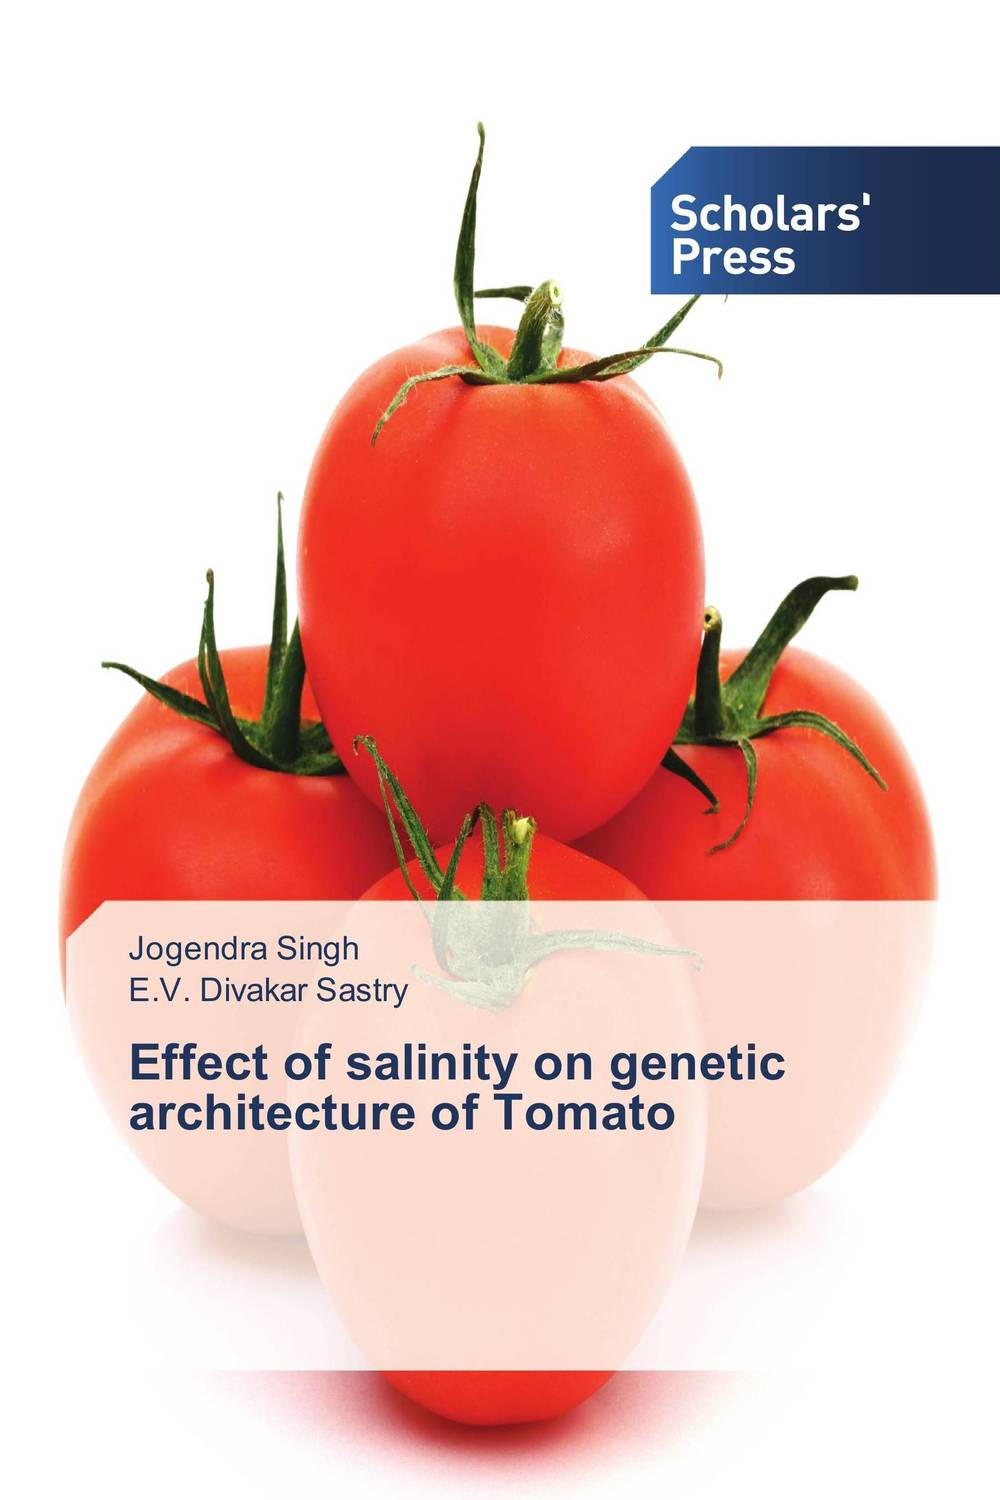 Effect of salinity on genetic architecture of Tomato wheat breeding for rust resistance